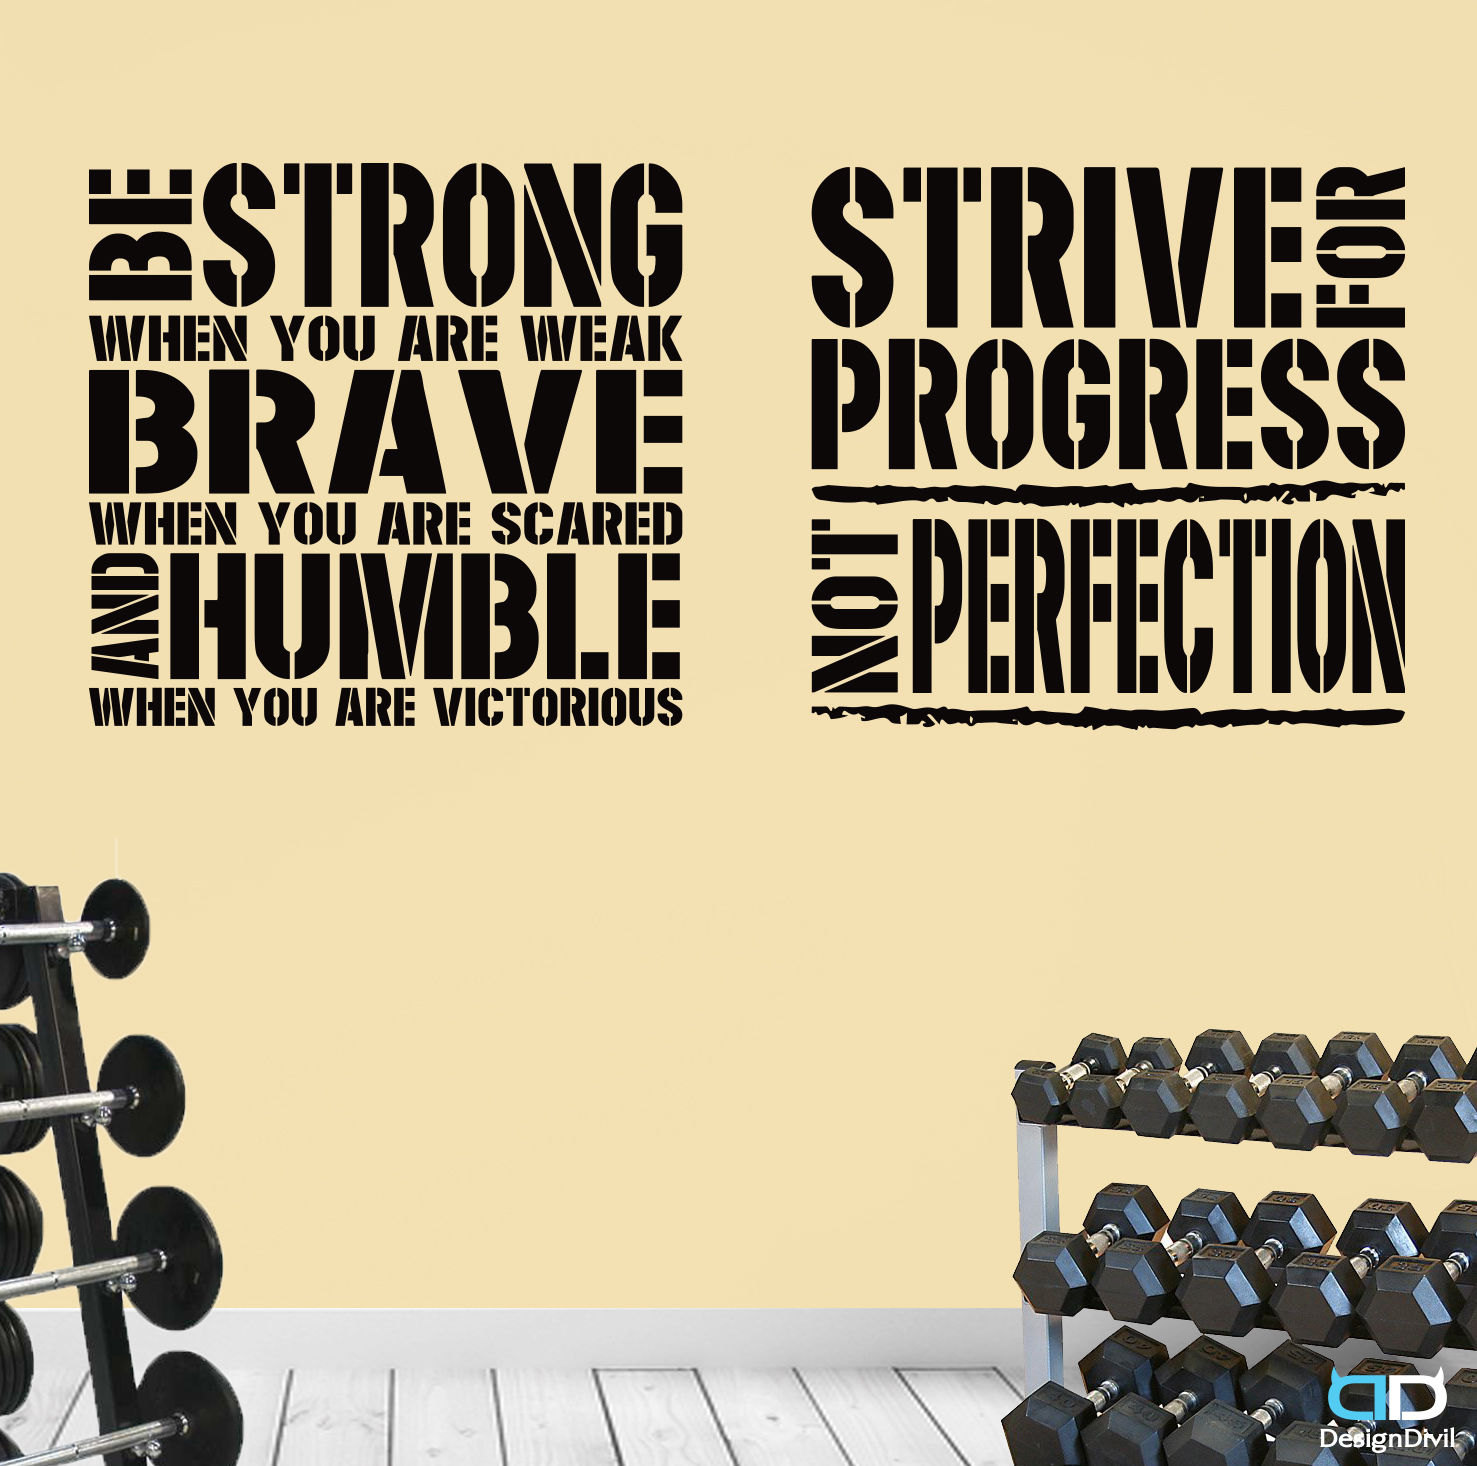 2 Gym Exercise Fitness Motivational Wall Decal Quotes Brave   Etsy